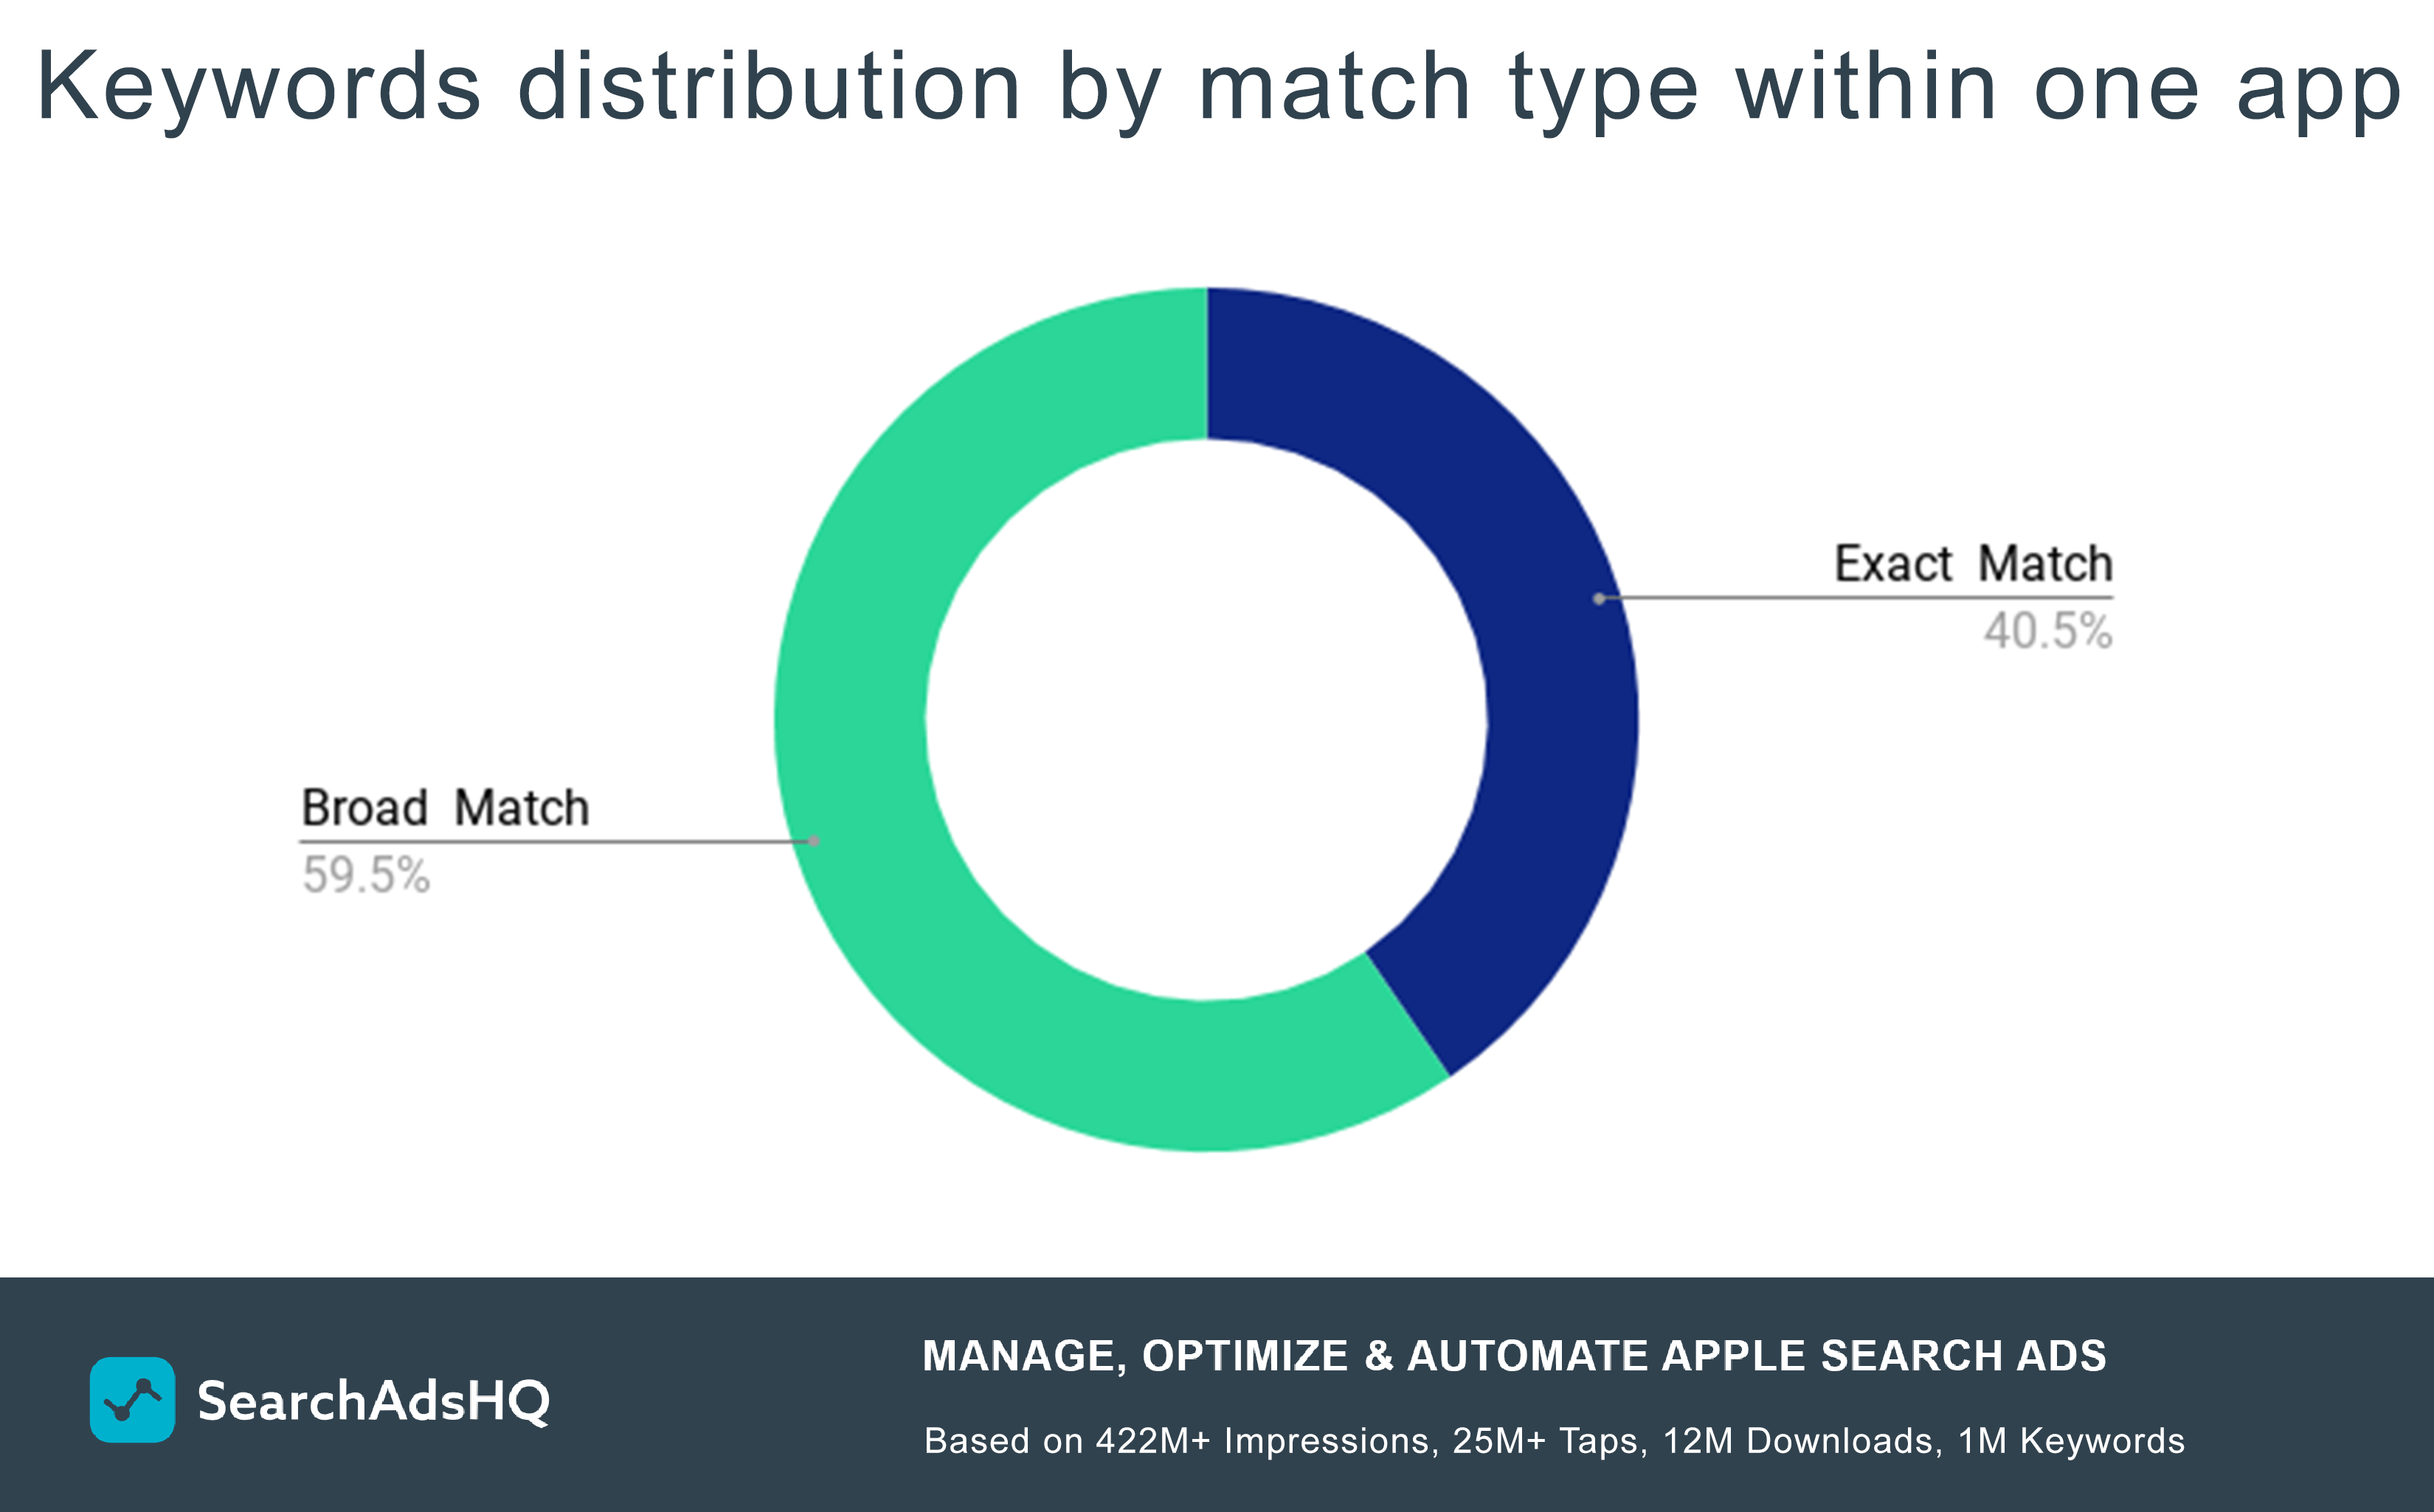 Apple Search Ads keywords distribution by match type